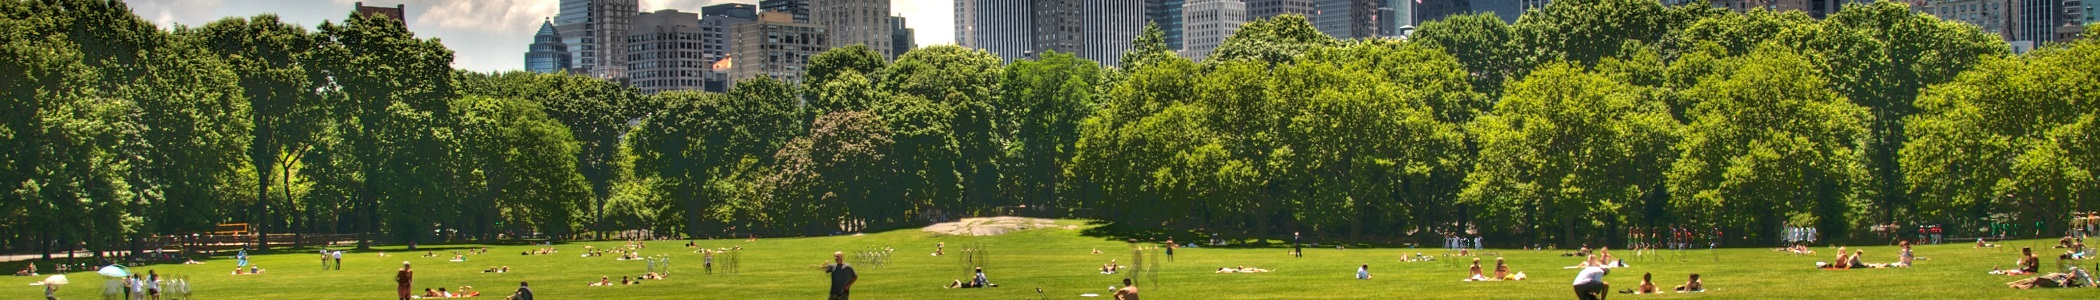 Manhattan/Central Park – Travel guide at Wikivoyage